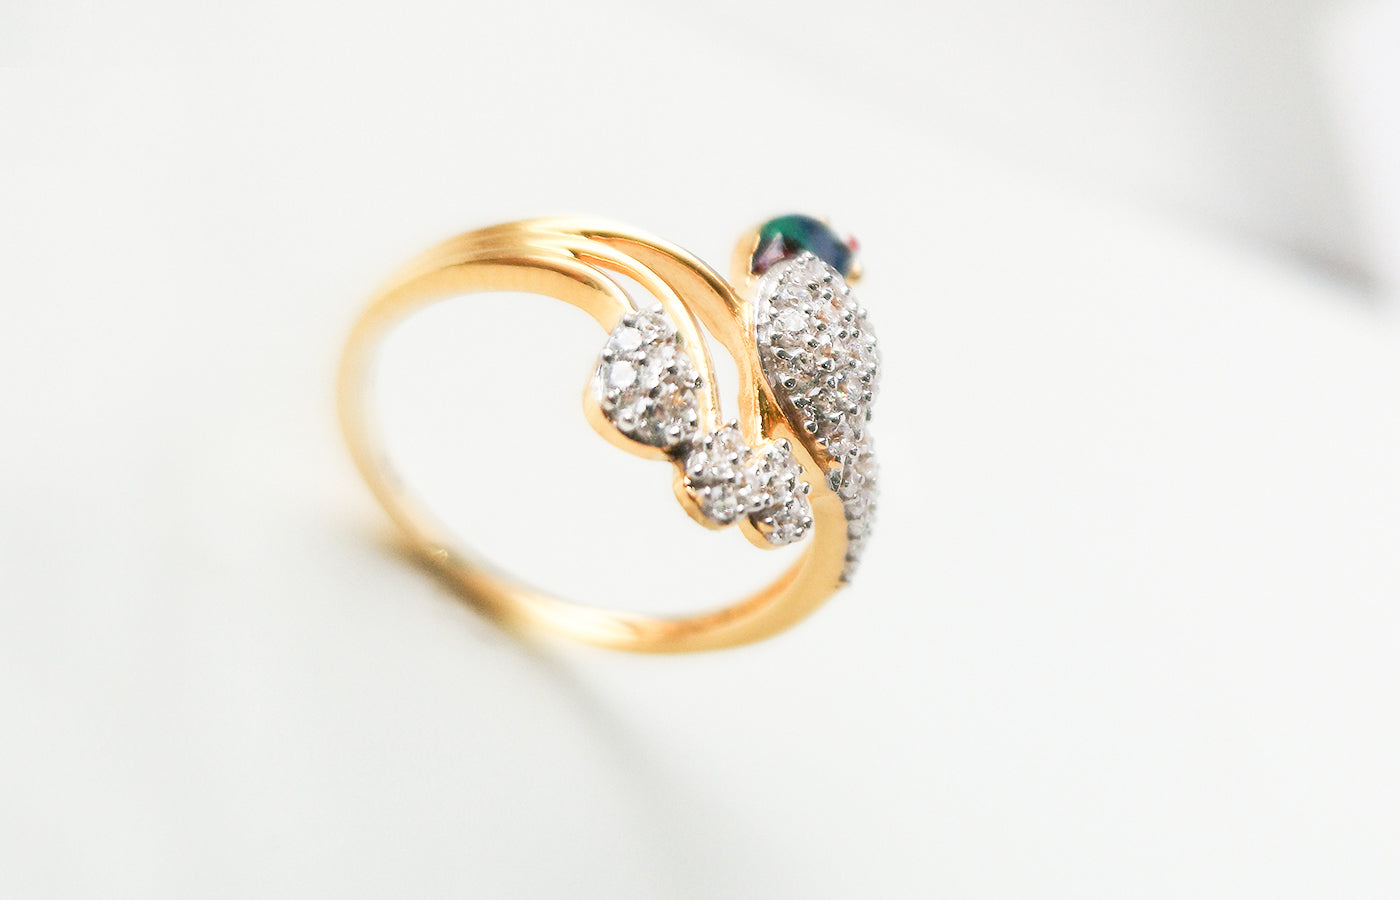 22ct Gold Peacock Design Dress Ring set with Swarovski Zirconias LR14649